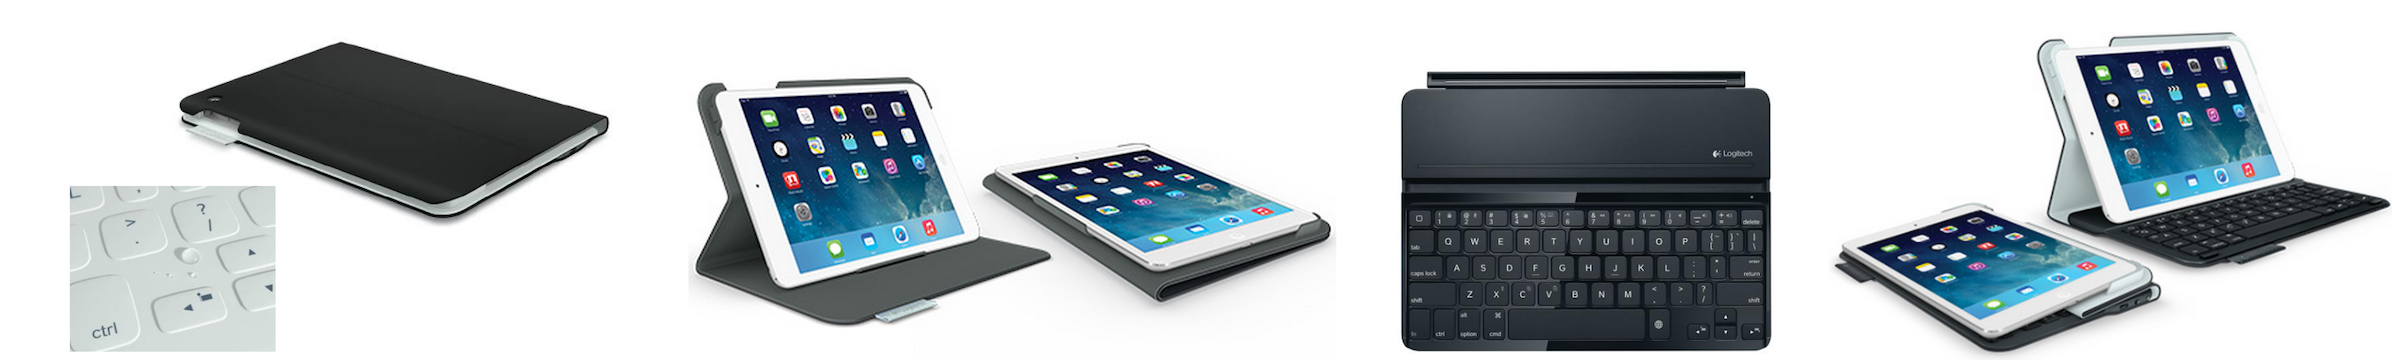 Logitech-iPad-Air-cases